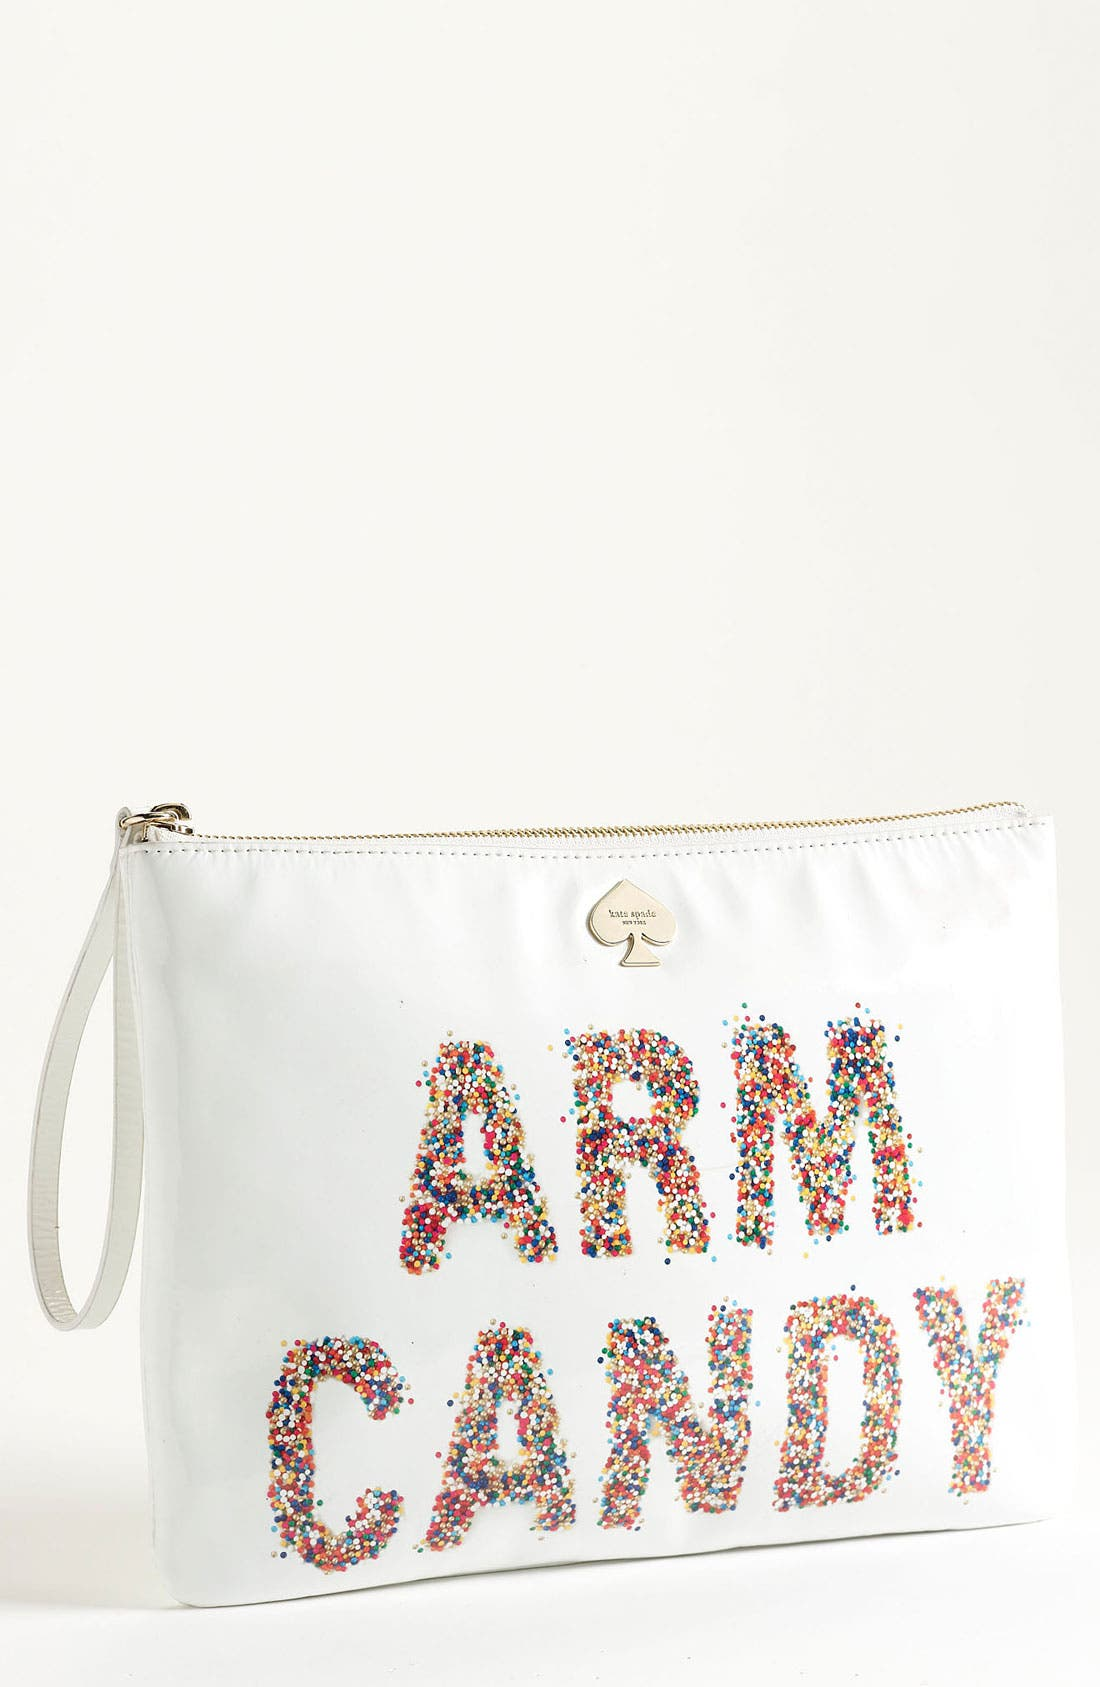 Alternate Image 1 Selected - kate spade new york 'arm candy' leather pouch